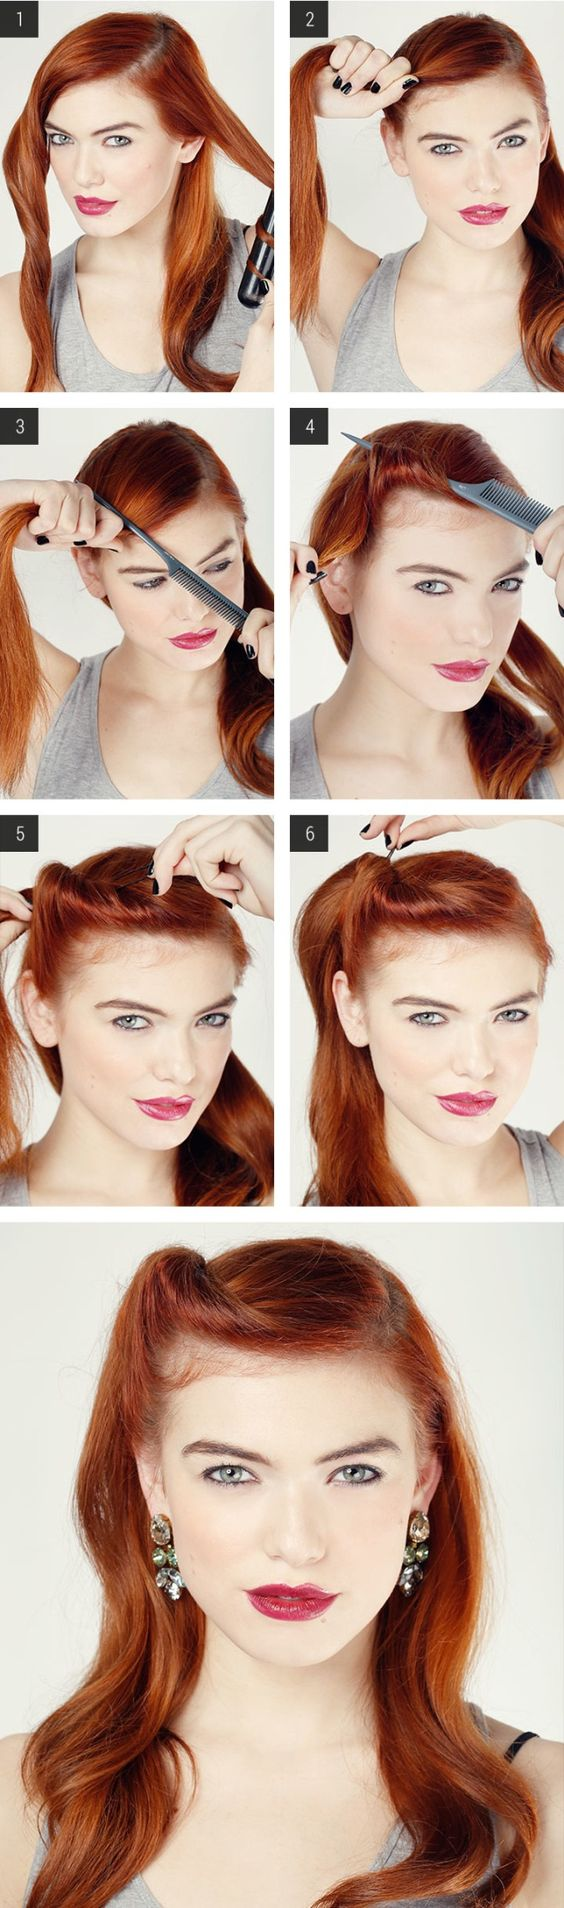 Retro Hair Tutorials